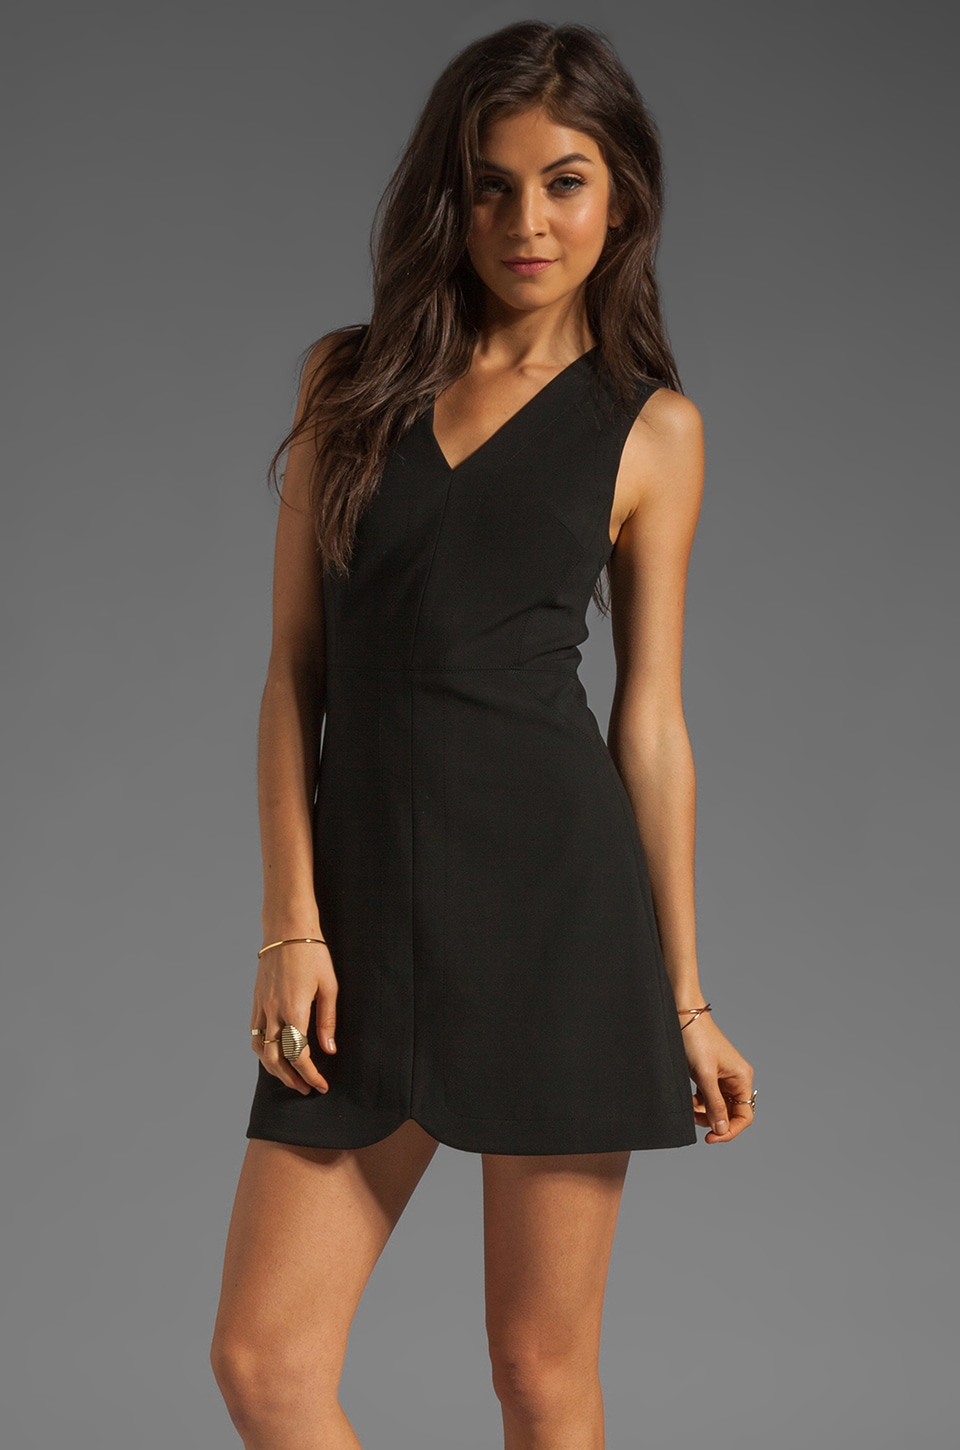 Tibi Anson Stretch Dress in Black